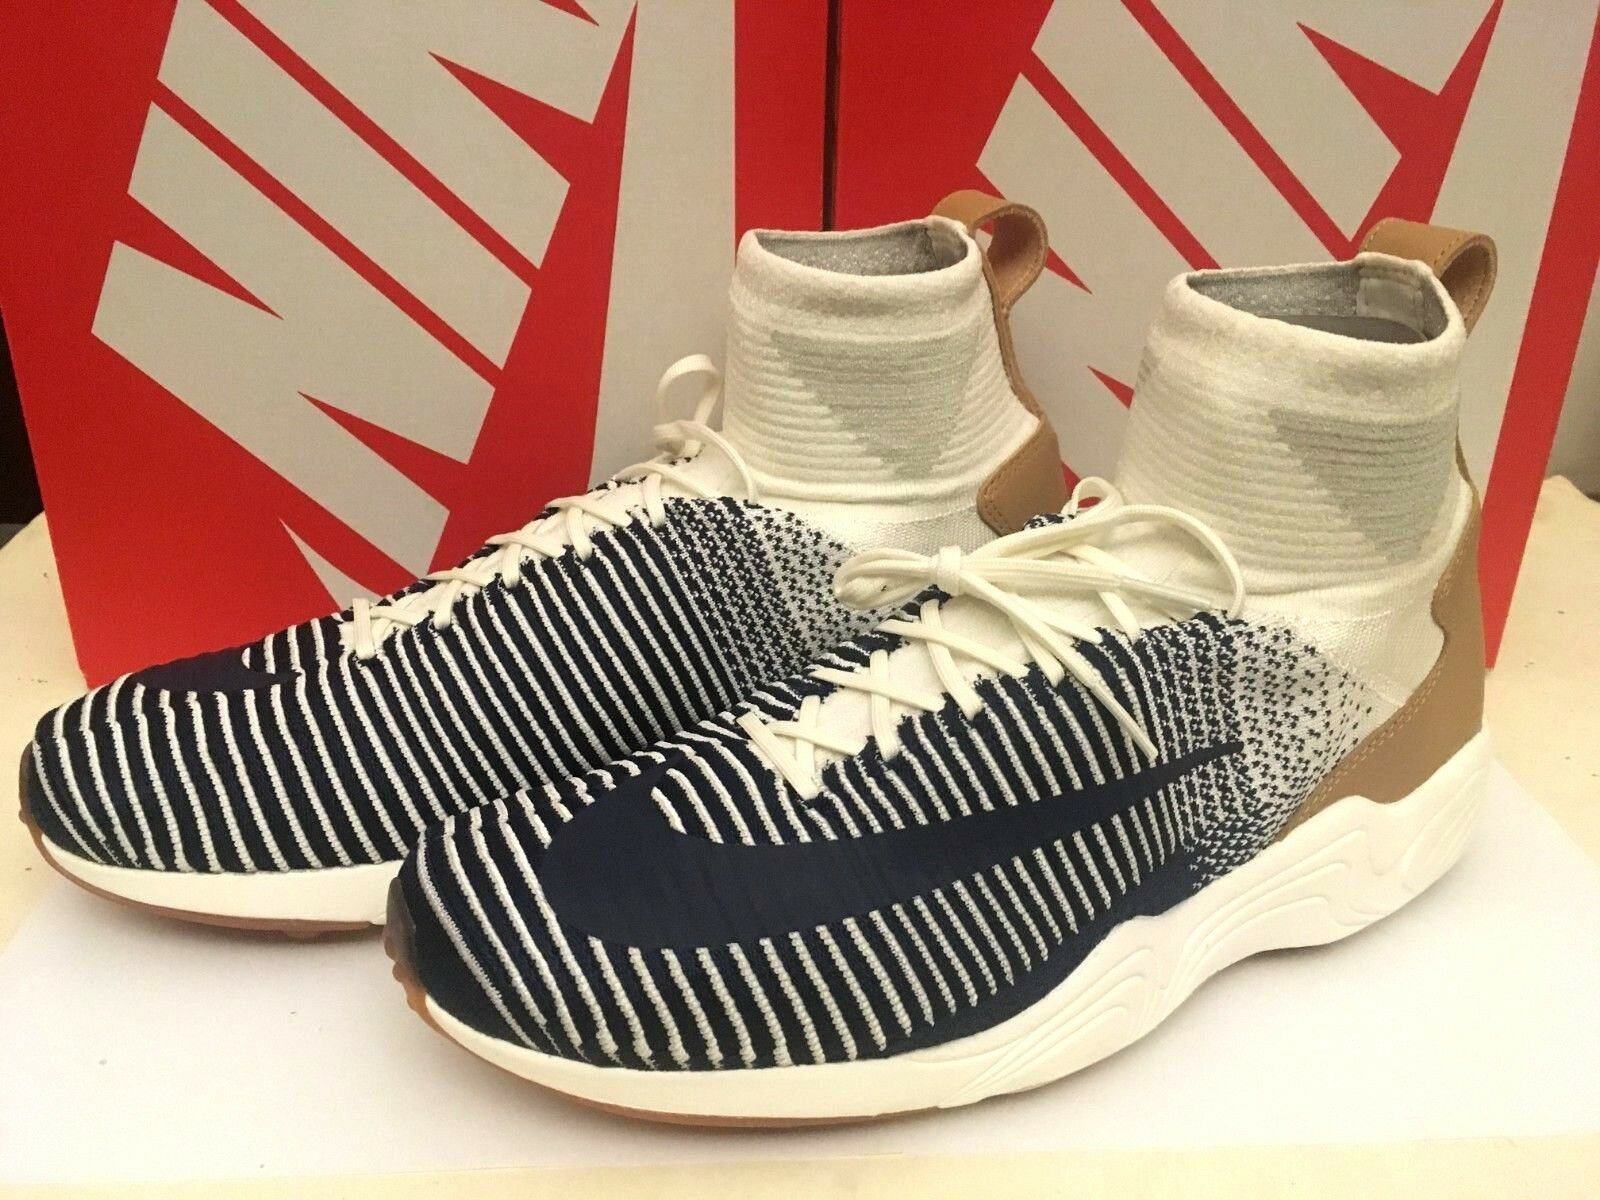 NIKE ZOOM MERCURIAL XI Flyknit Navy Grey - Eur 44 US 10